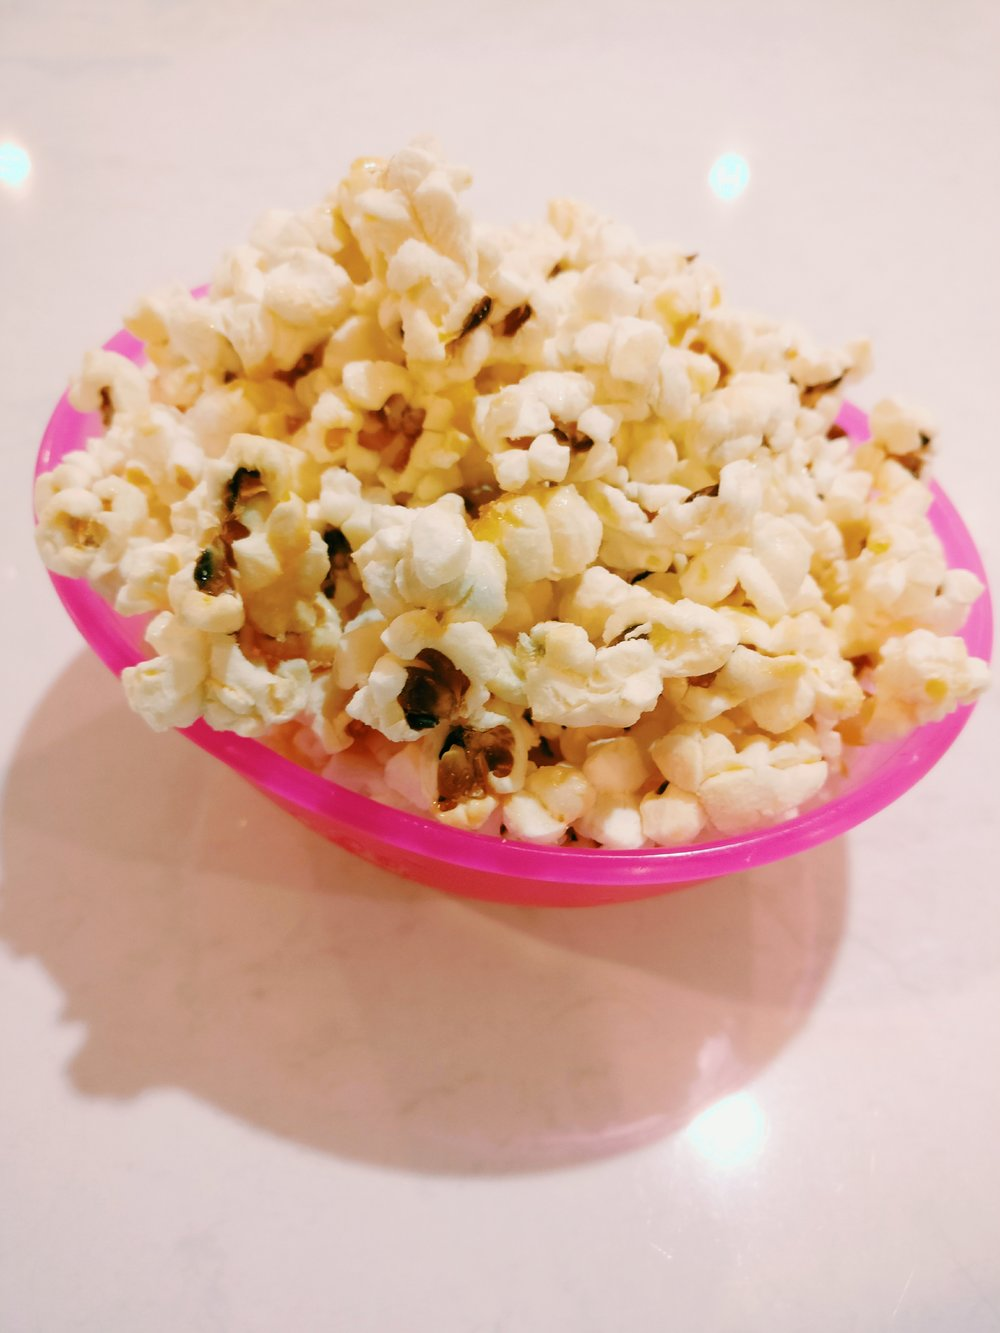 Kettle Corn - Ingredients1/4 Cup Popcorn Kernals2t Coconut Oil2T White Sugar1t SaltMethod1. Place the coconut oil in a large saucepan and place on an element at medium heat2. Add 2-3 popcorn kernals to the saucepan and place the lid on3. Once the popcorn kernals have popped, remove them from the saucepan, add the sugar and 1/4 Cup of popcorn kernals to the saucepan, cover4. Shake the saucepan every 20-30 seconds and continue to do so once the popcorn is popping5. Once the popping slows down, pour the popcorn into another bowl and toss, add the salt to the popcorn and continue to toss until coolClick here for the recipe video link